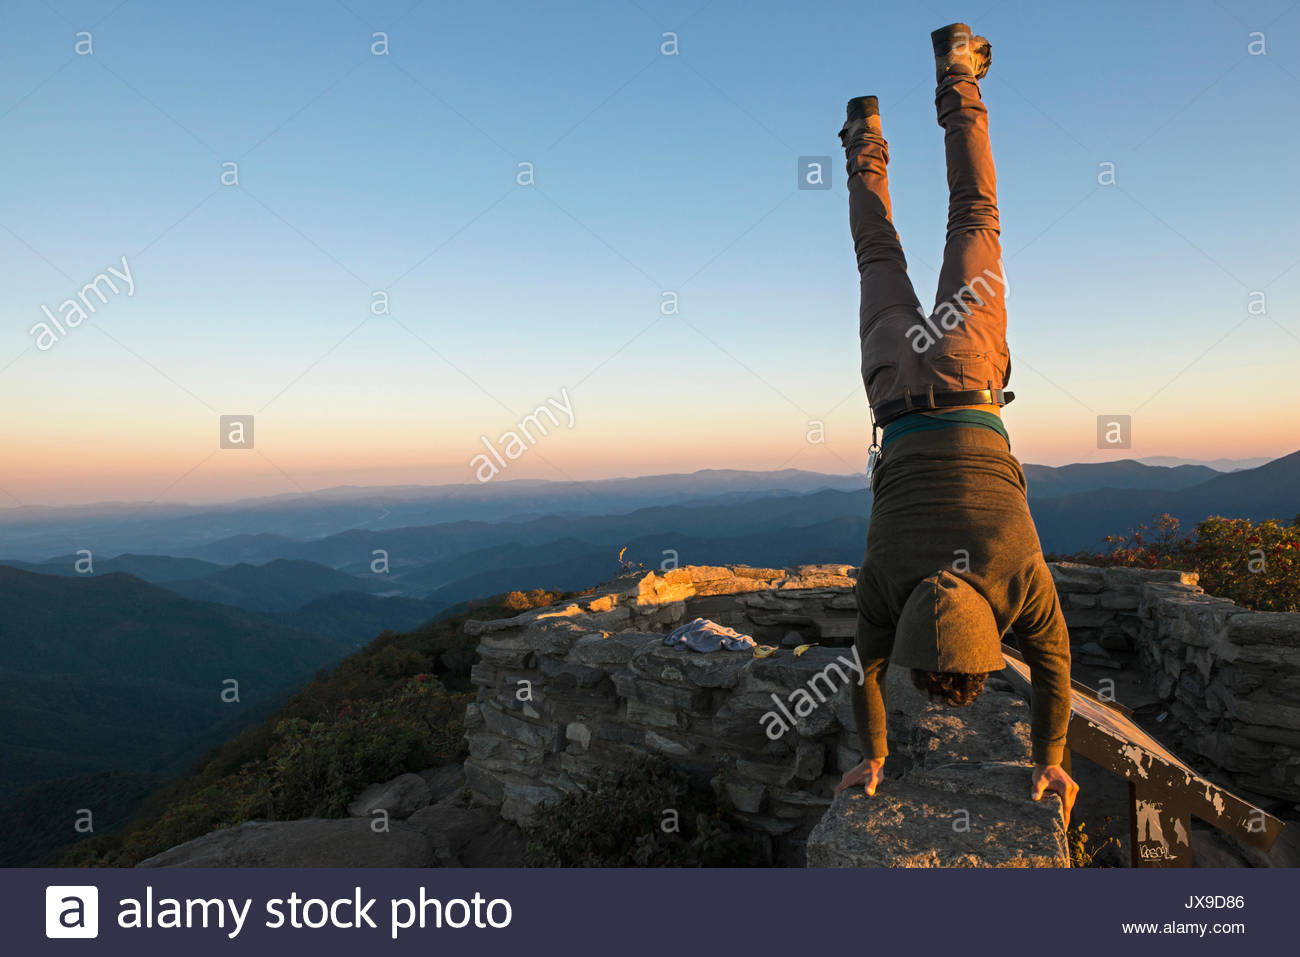 A man performs a handstand at the top of Craggy Pinnacle Trail along the Blue Ridge Parkway. - Stock Image